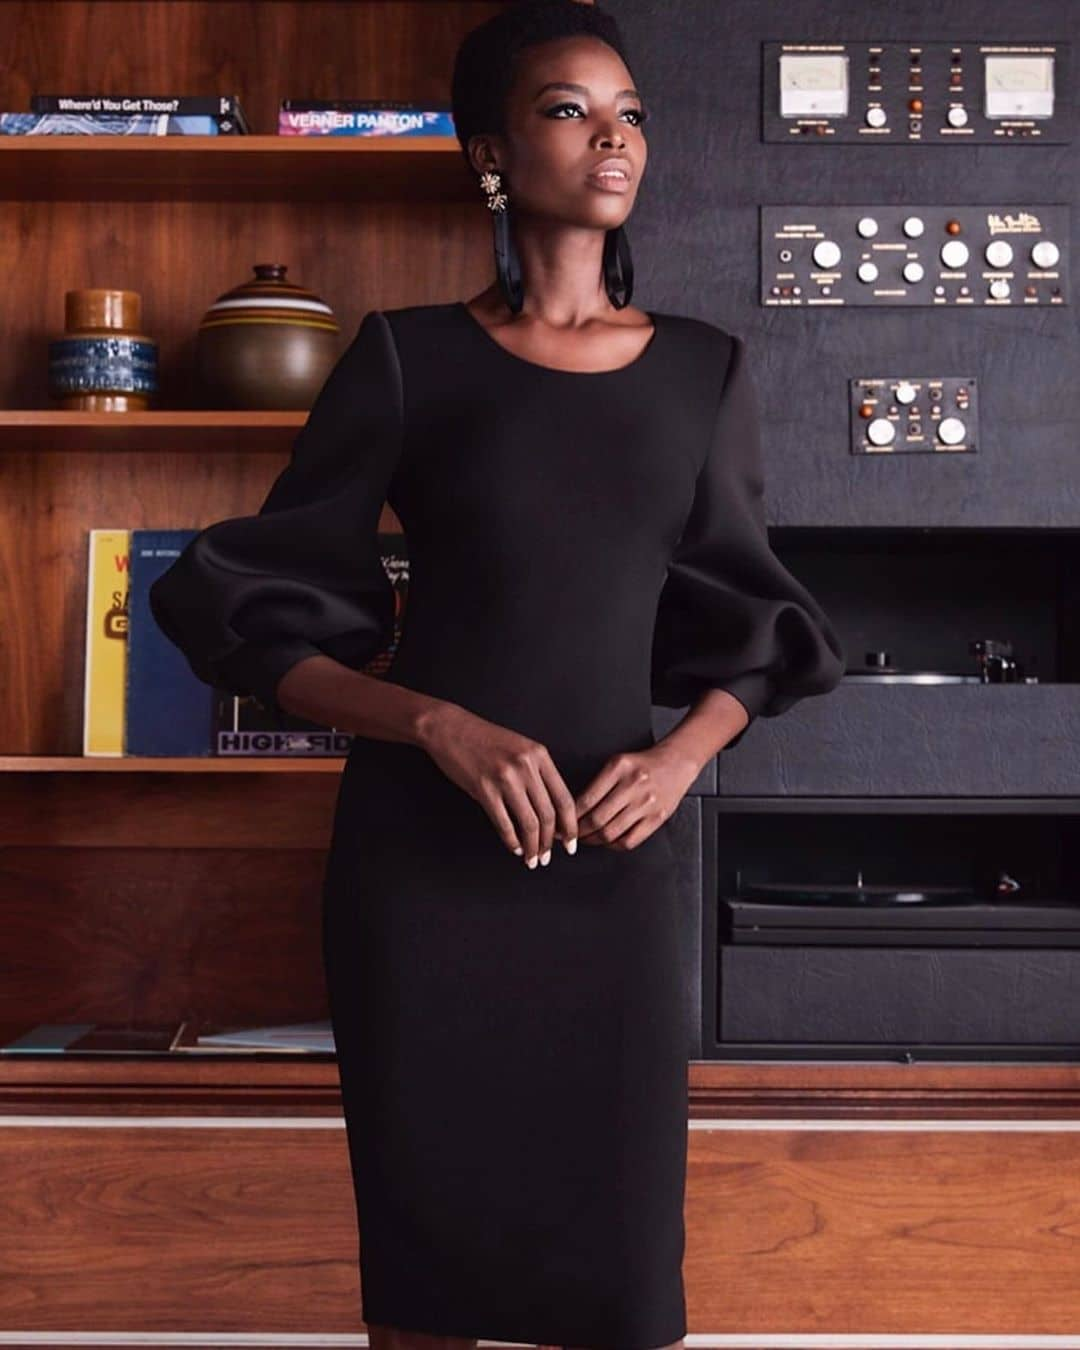 maria-borges-how-to-style-a-black-dress-and-win